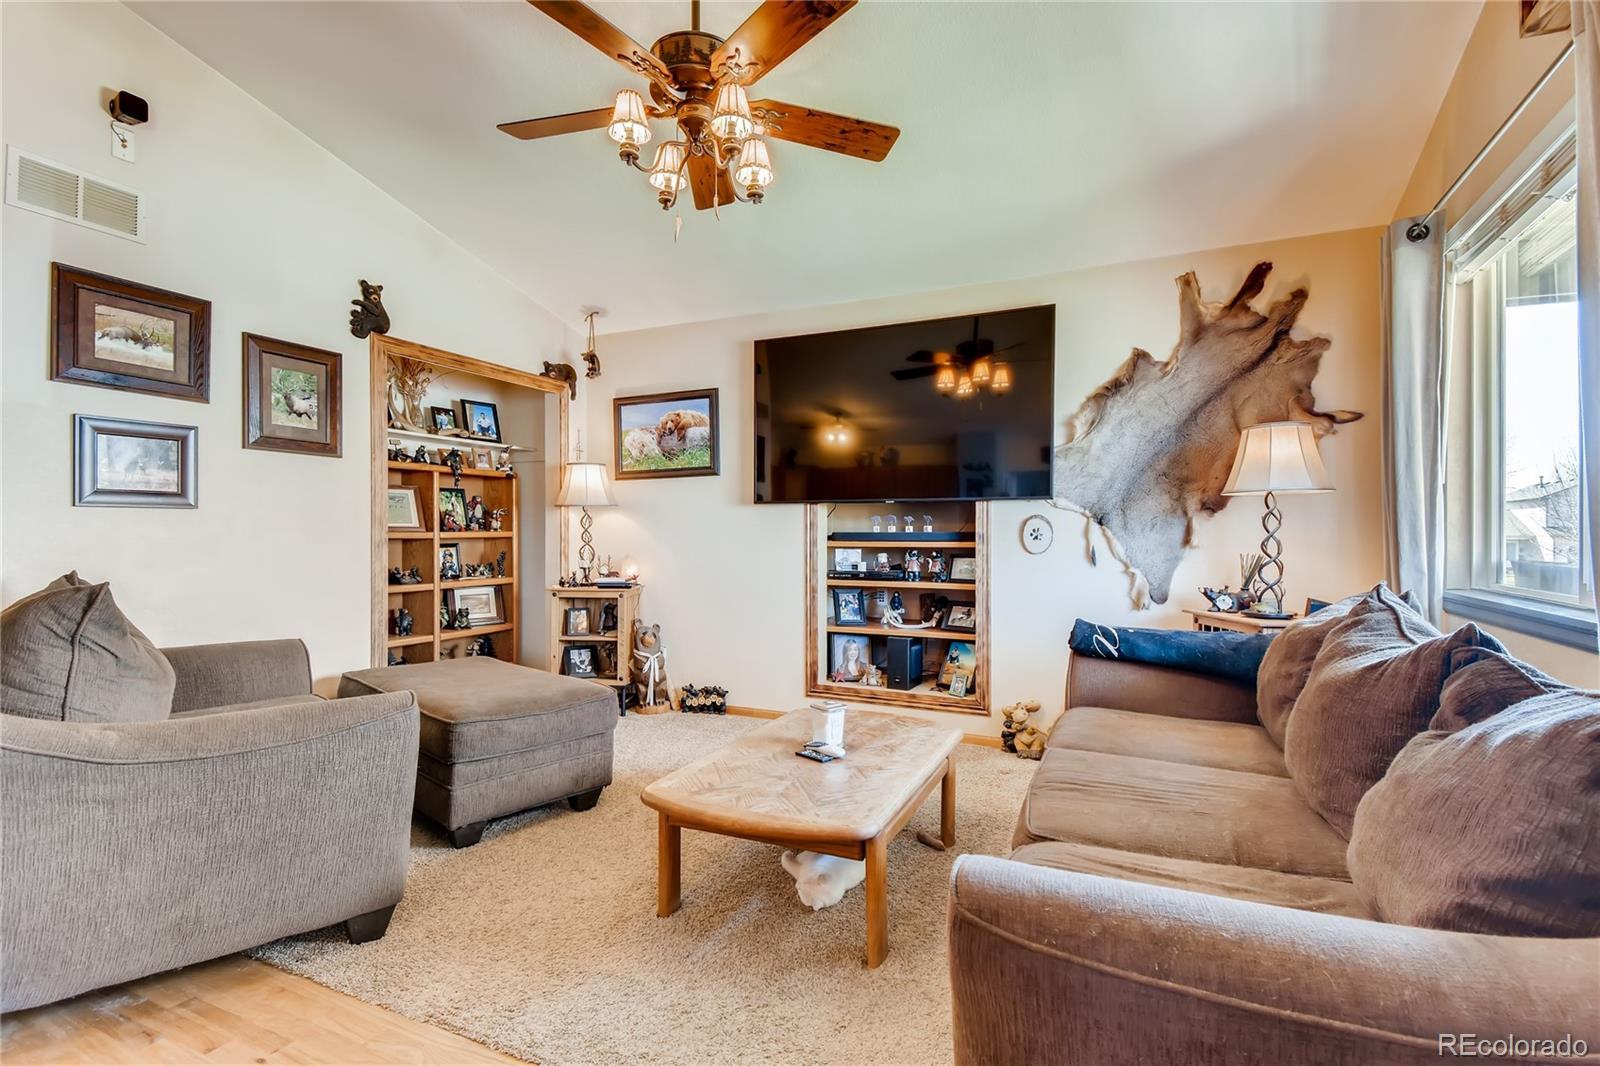 MLS# 3845561 - 5 - 524 Hawthorn Circle, Frederick, CO 80530